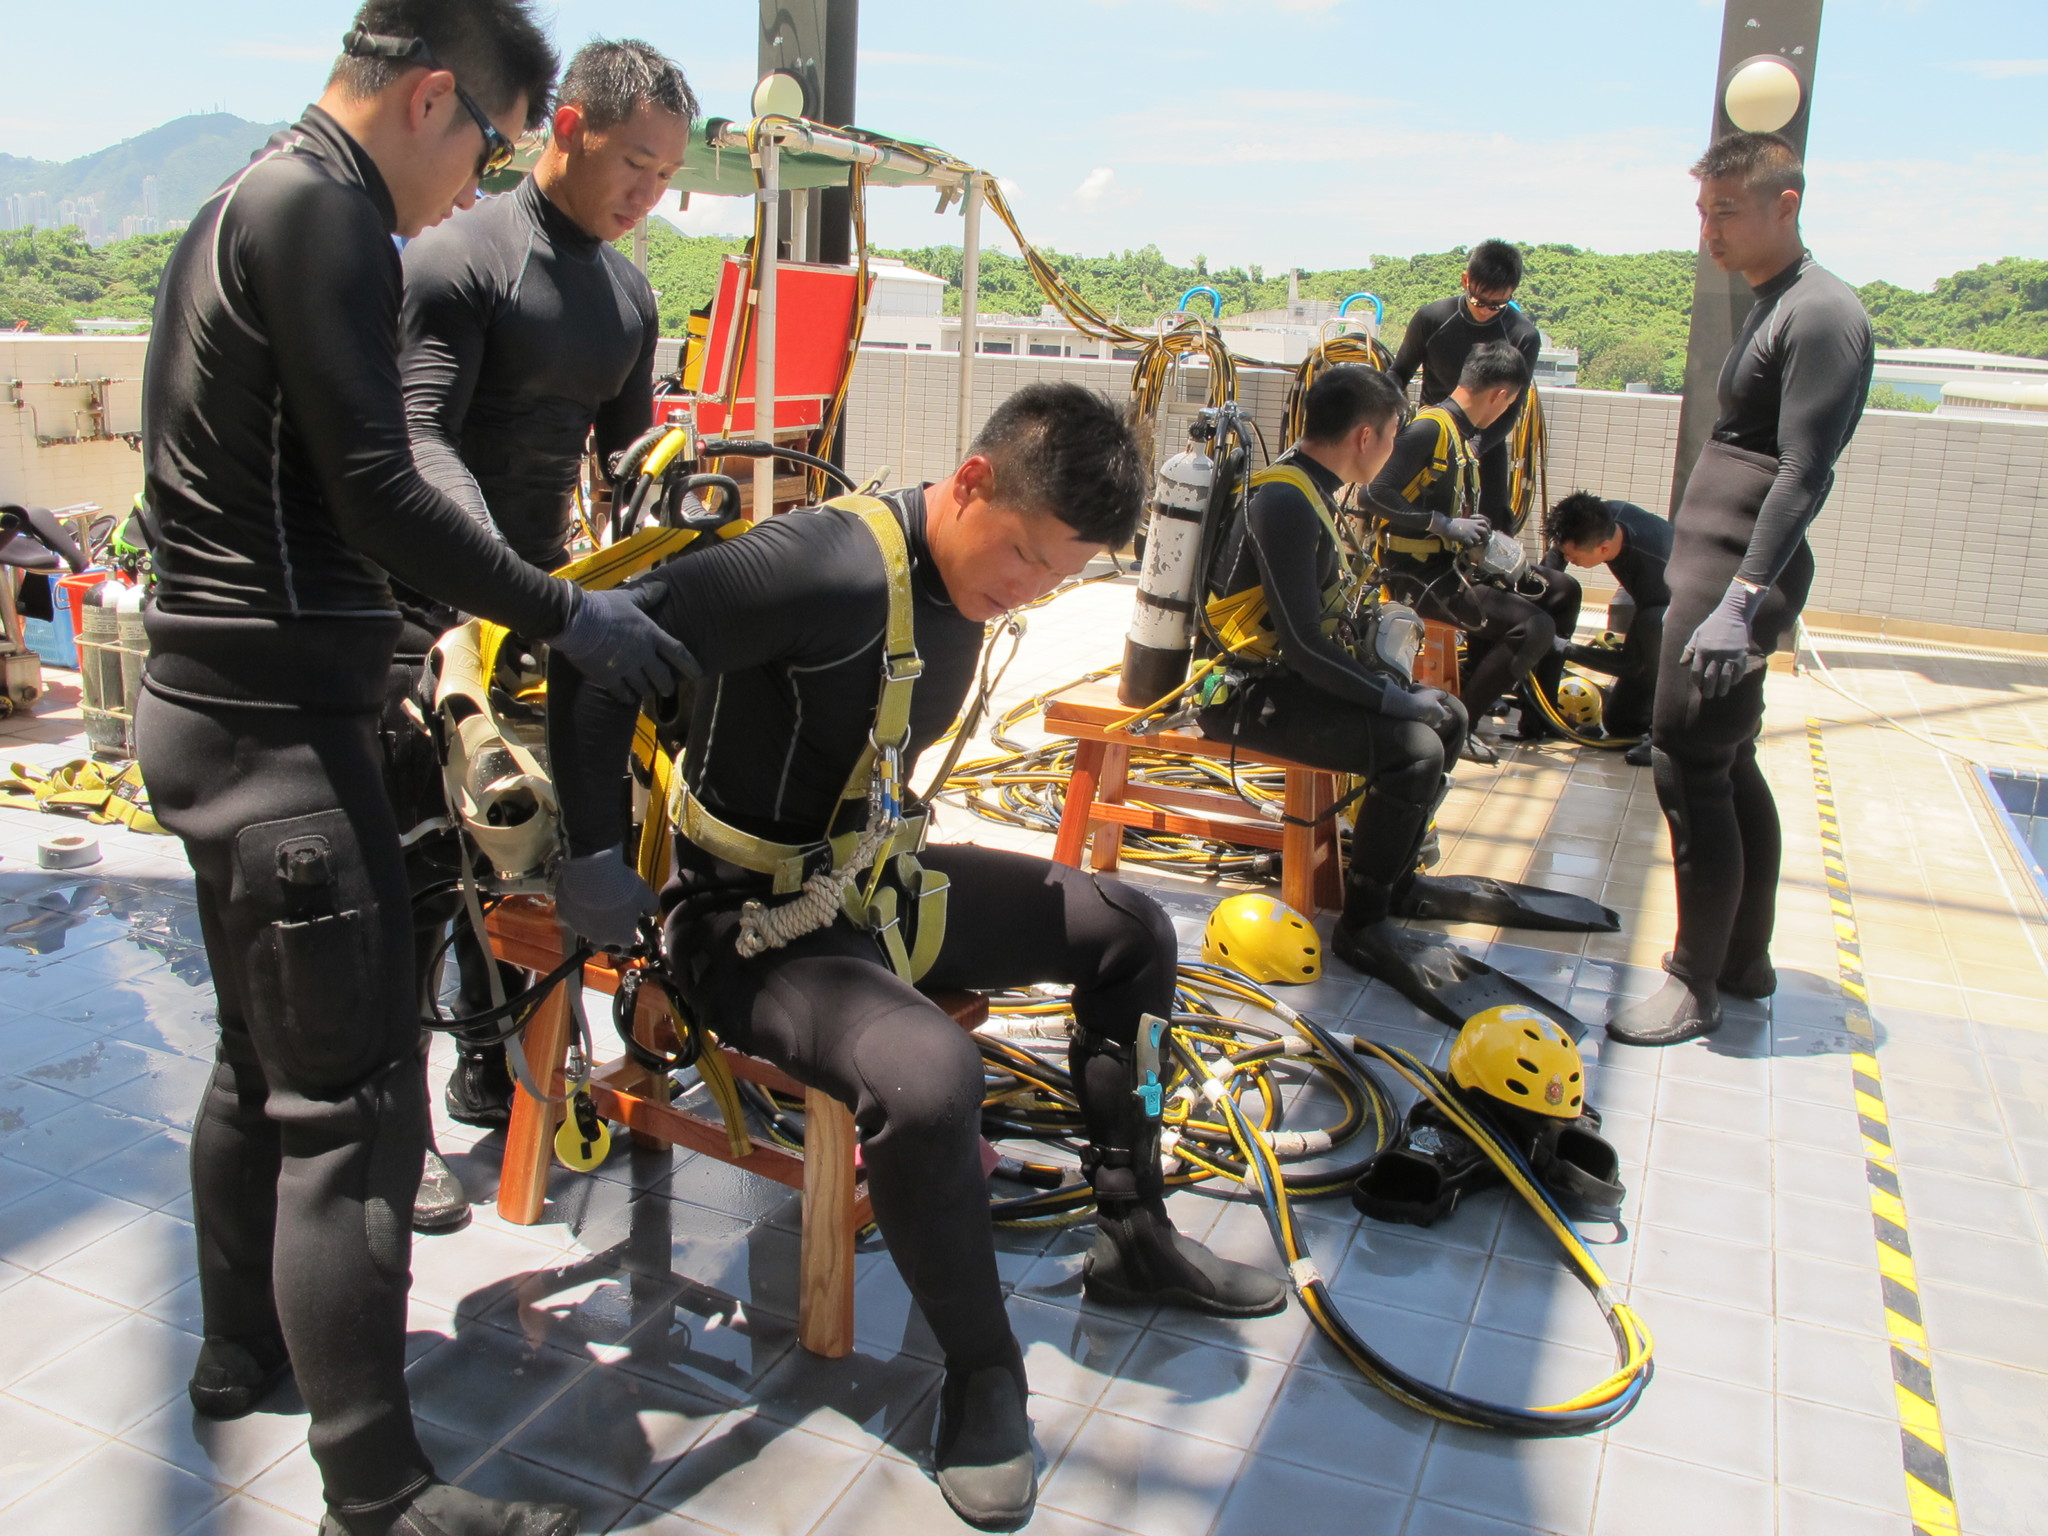 SRT members need to go through rigorous training to develop specialist skills and understand the high risks of their missions within a hyperbaric environment.